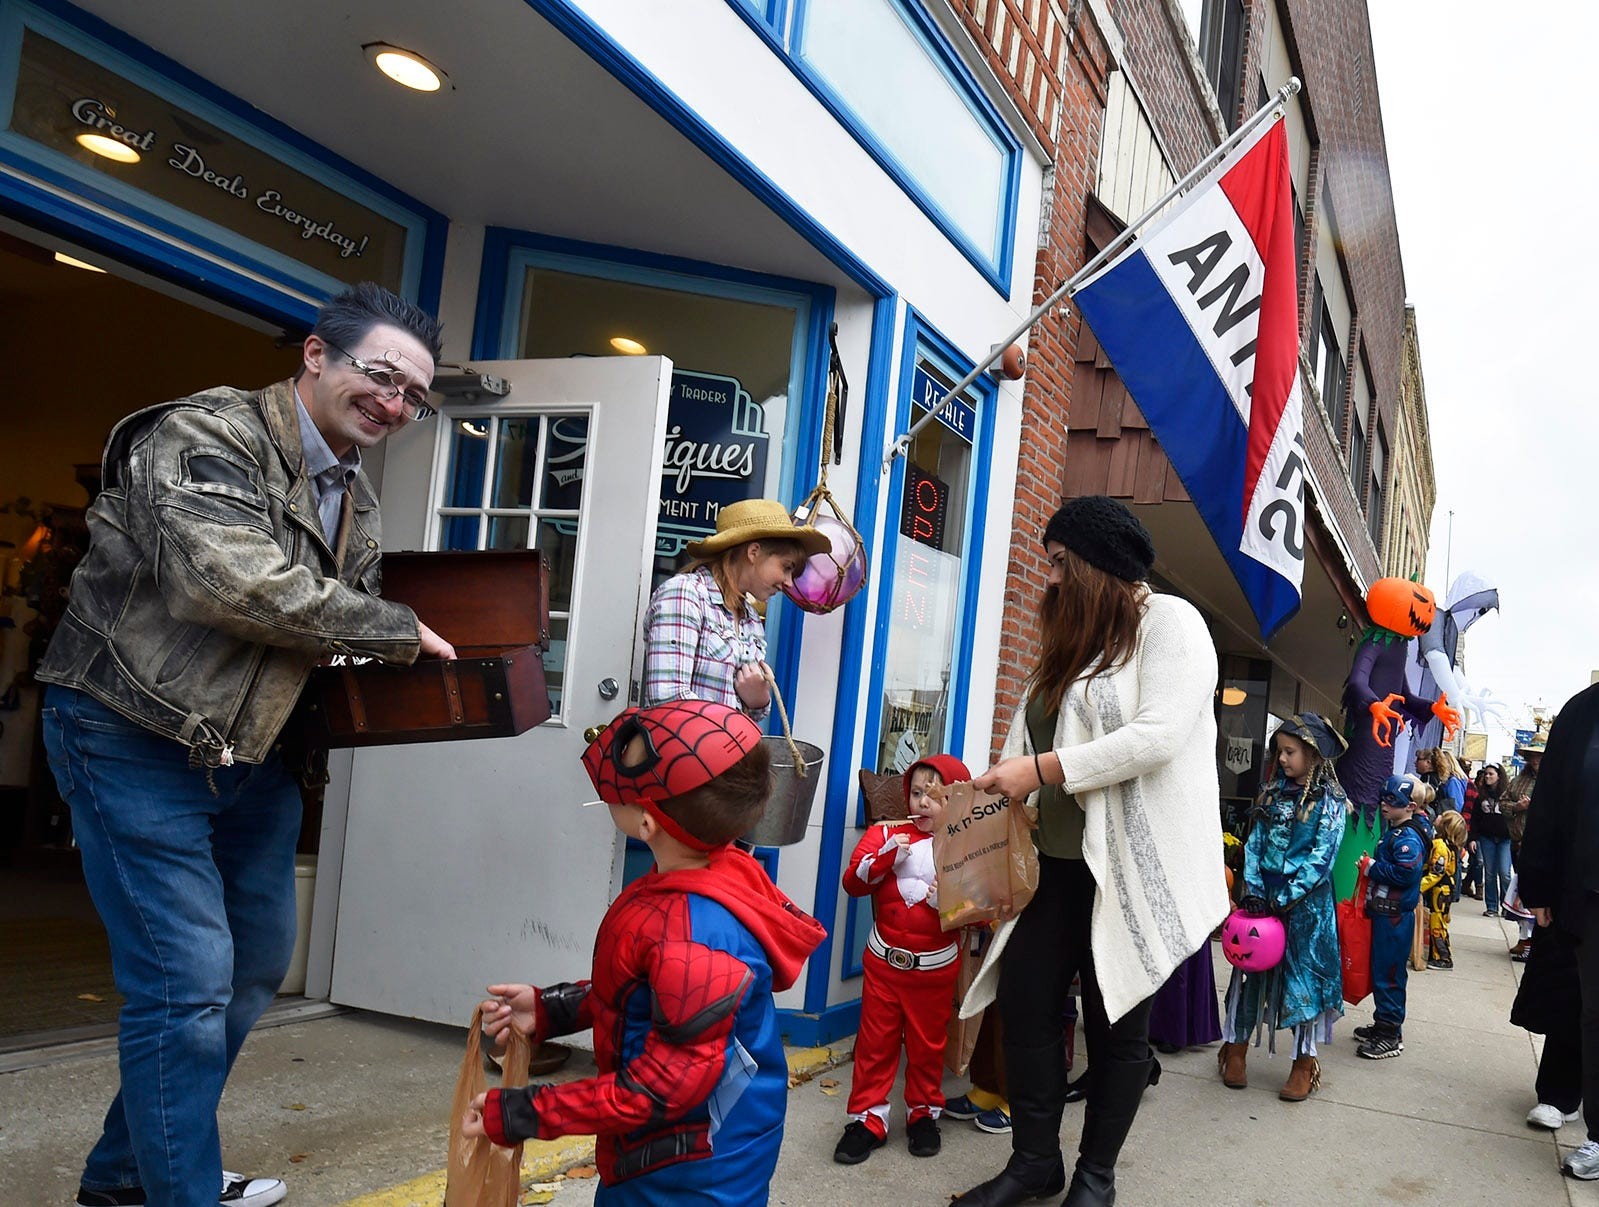 Tristan Wier of WierClock hands out candy on North Third Avenue at the Thrills on Third costume parade on Saturday, Oct. 27, 2018, in Sturgeon Bay. Tina M. Gohr/USA TODAY NETWORK-Wisconsin